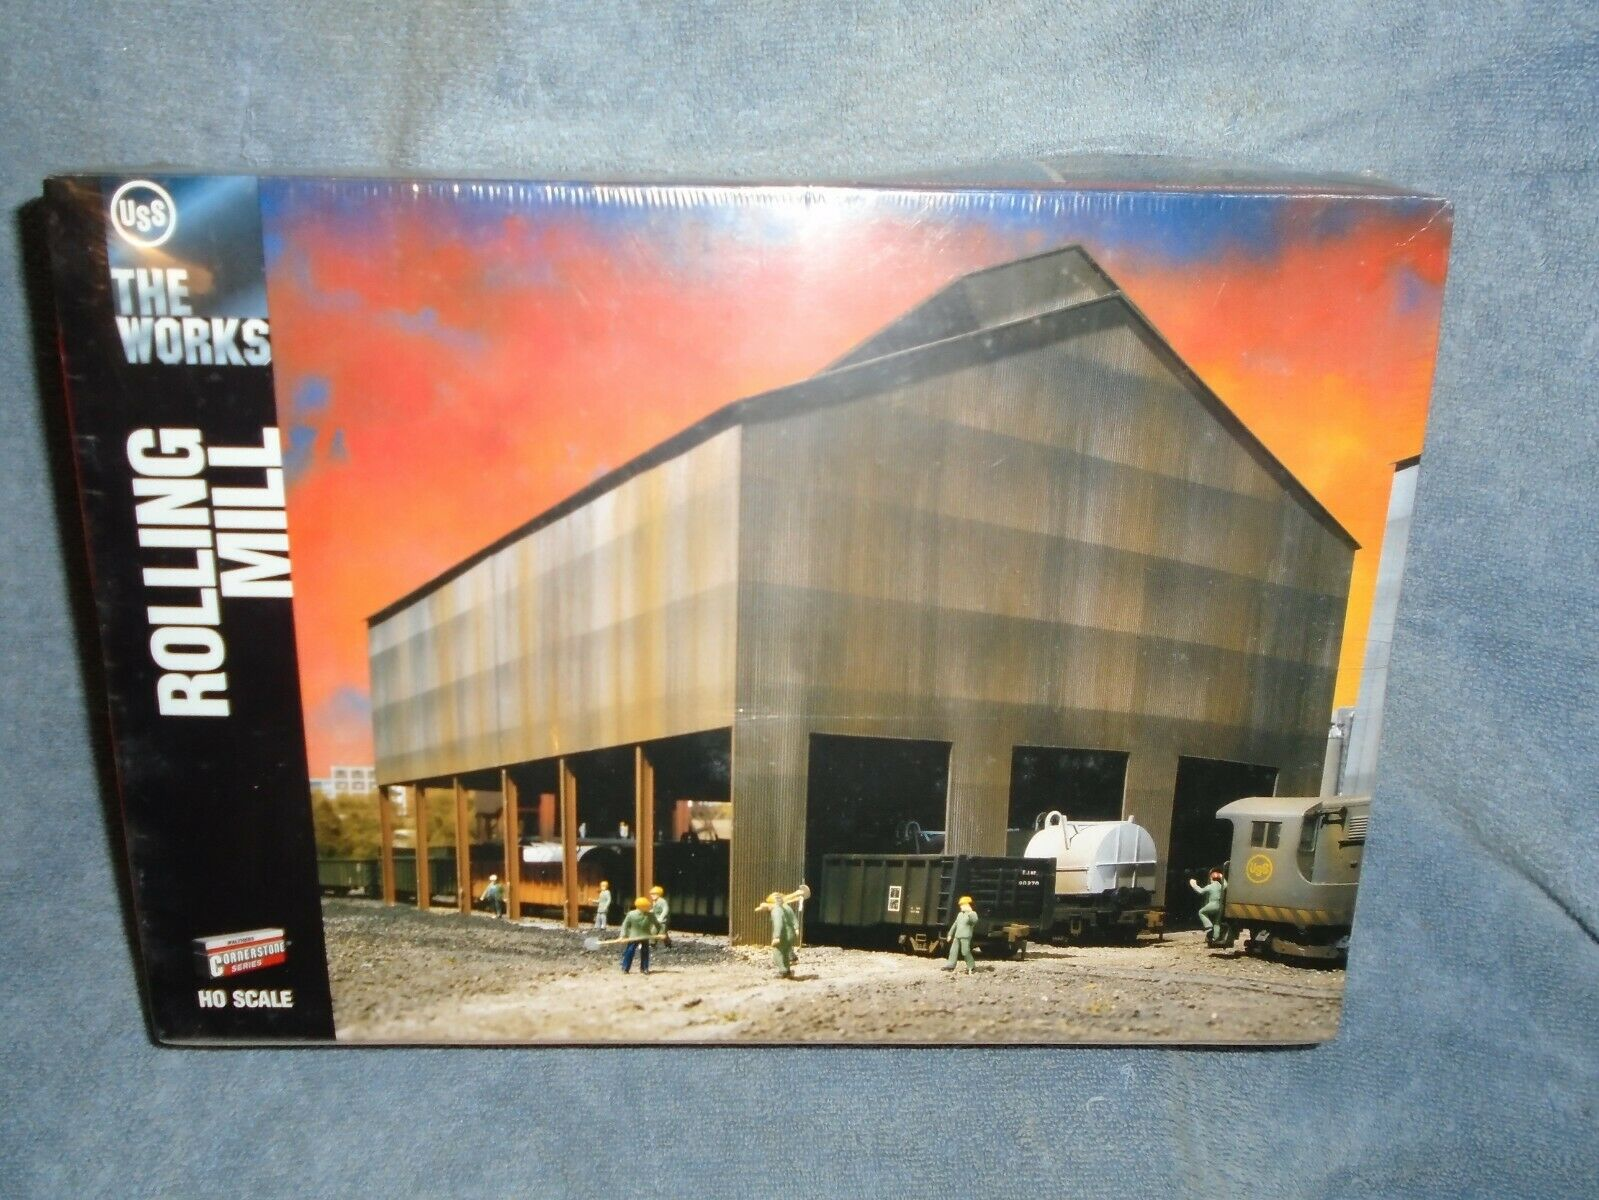 n ° 1 online WALTHERS CORNERSTONE SERIES HO SCALE  933-3052 THE THE THE lavoroS USS ROLLING MILL  confortevole